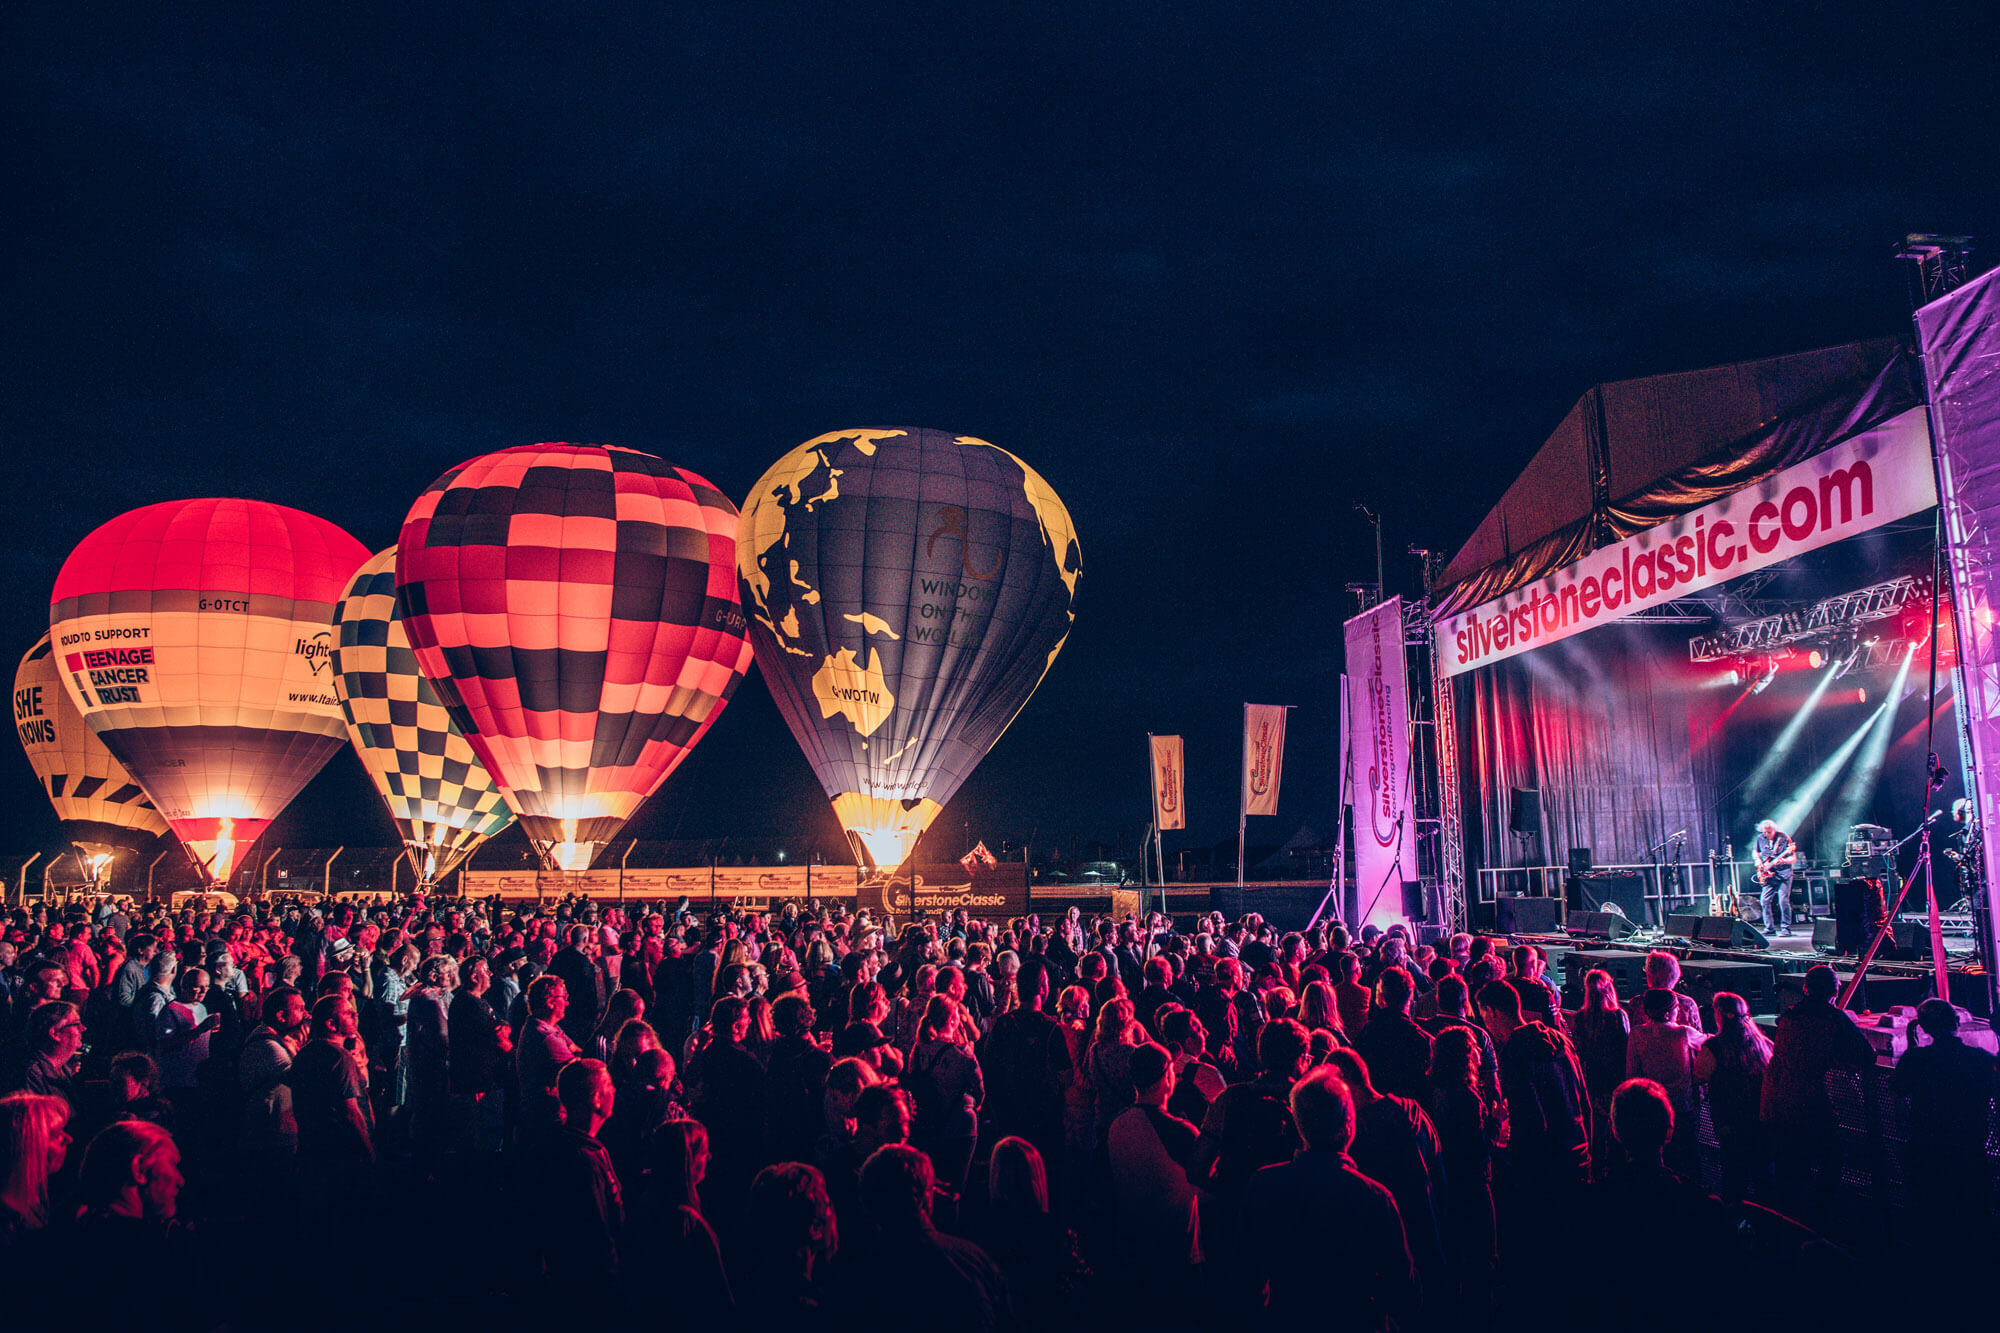 A large crowd gathered in the evening in front of the concert stage at The Classic at Silverstone with hot air balloons lit up in the background